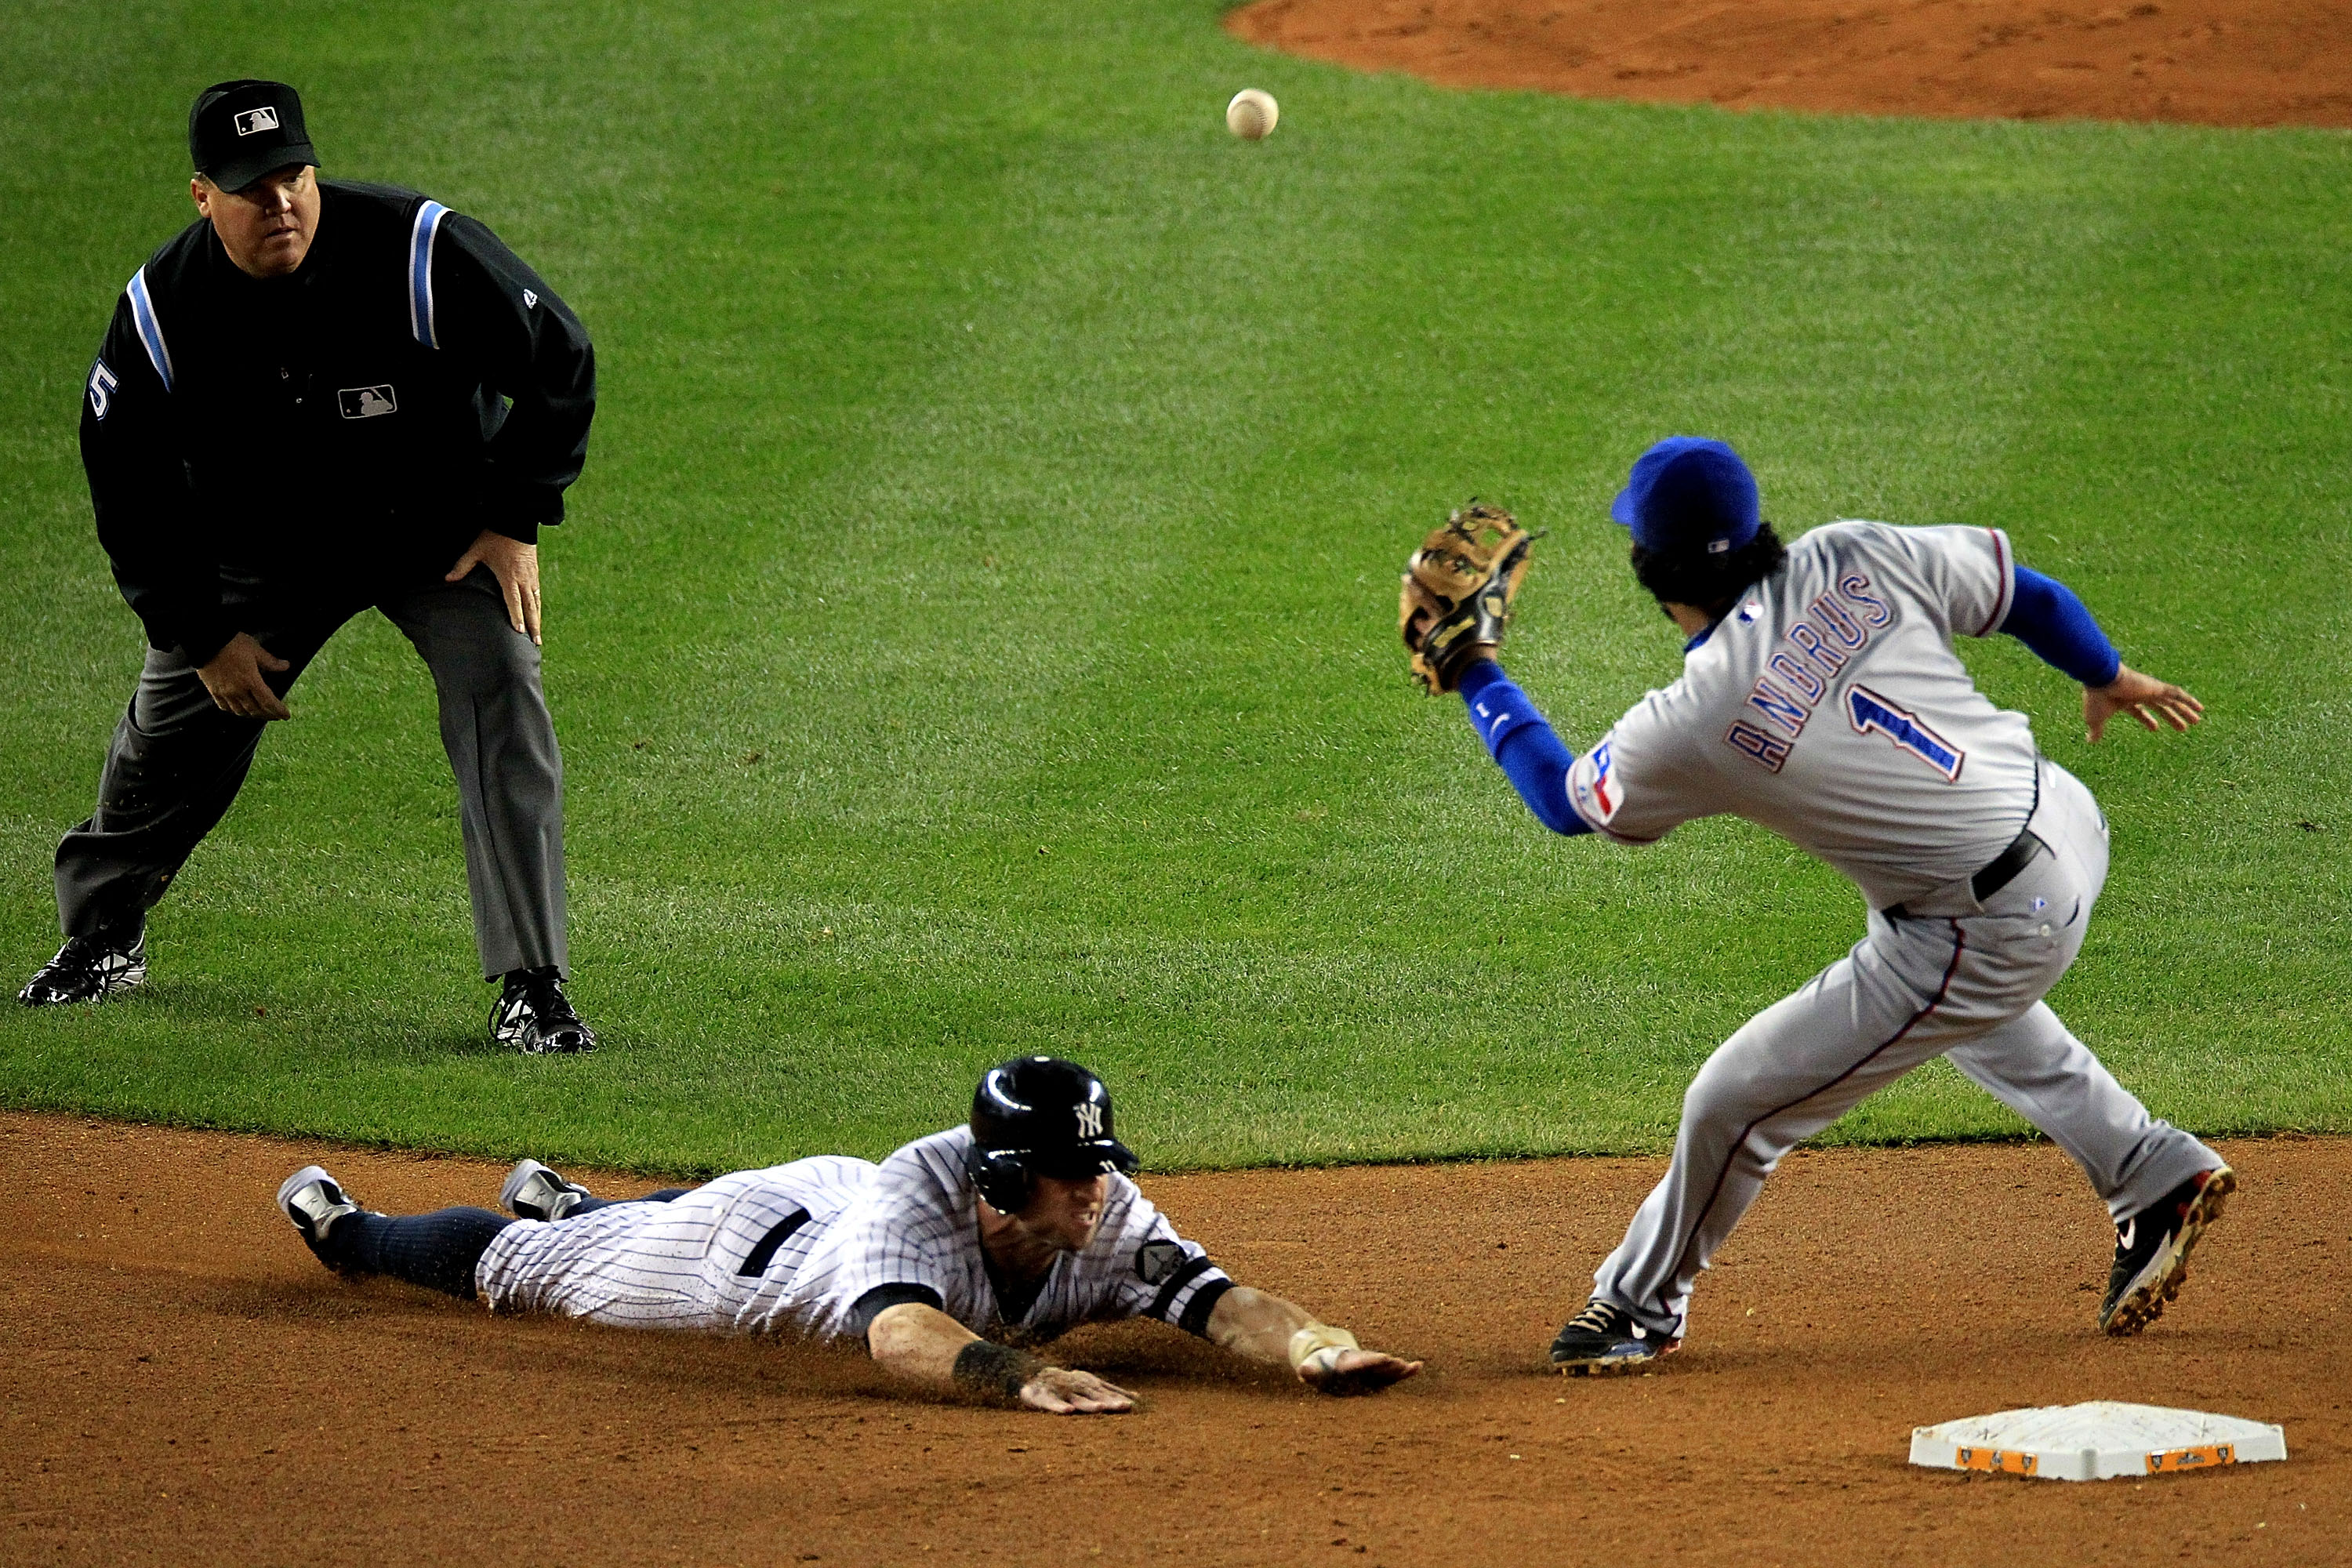 NEW YORK - OCTOBER 18:  Brett Gardner #11 of the New York Yankees steals second base as Elvis Andrus #1 of the Texas Rangers fails to field throw during Game Three of the ALCS during the 2010 MLB Playoffs at Yankee Stadium on October 18, 2010 in New York,